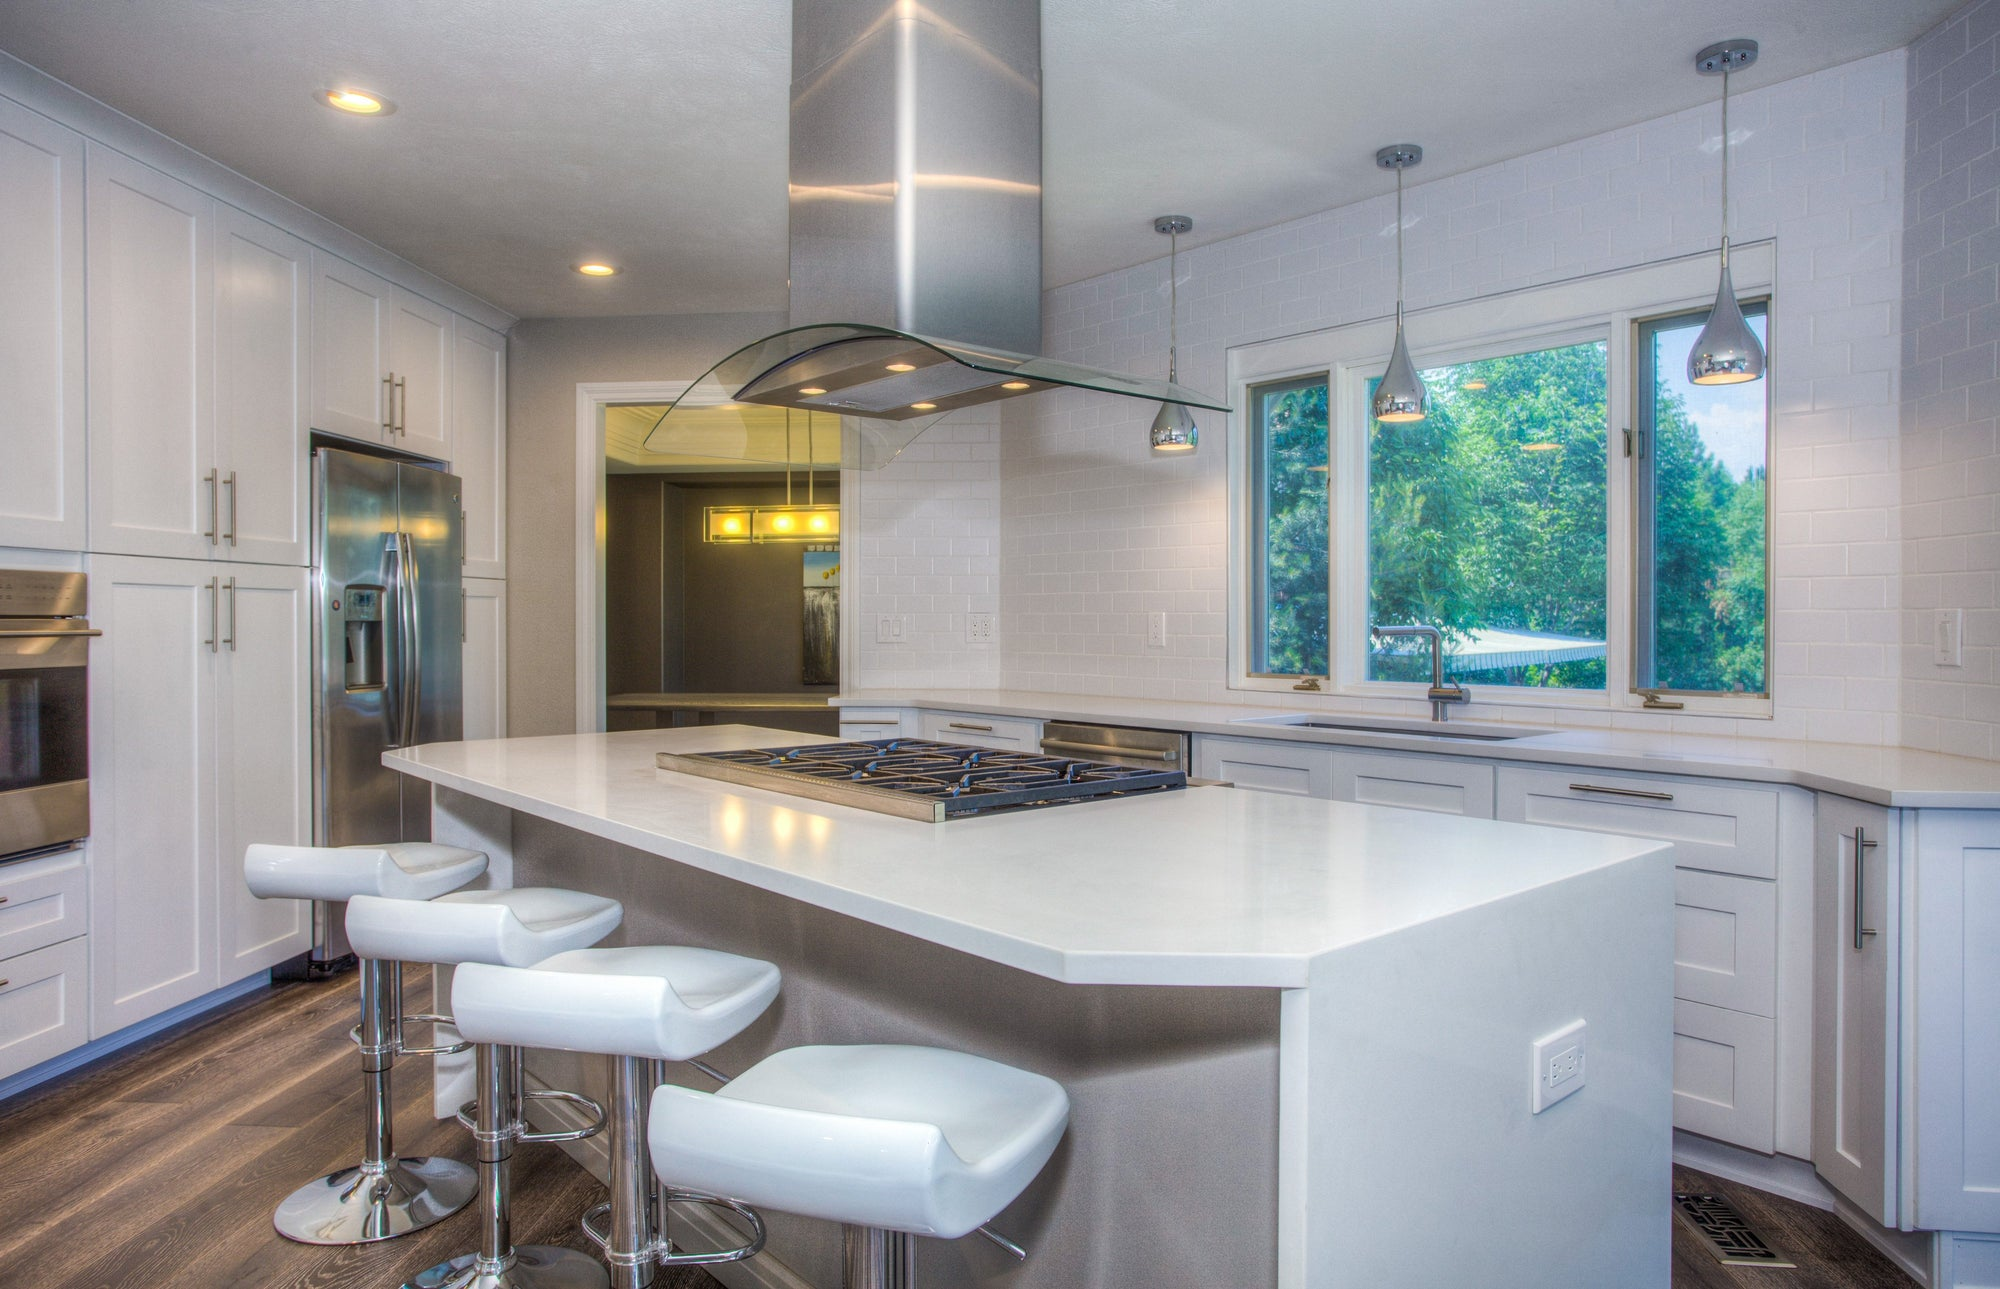 Best ways you can complete a great kitchen remodel on a budget